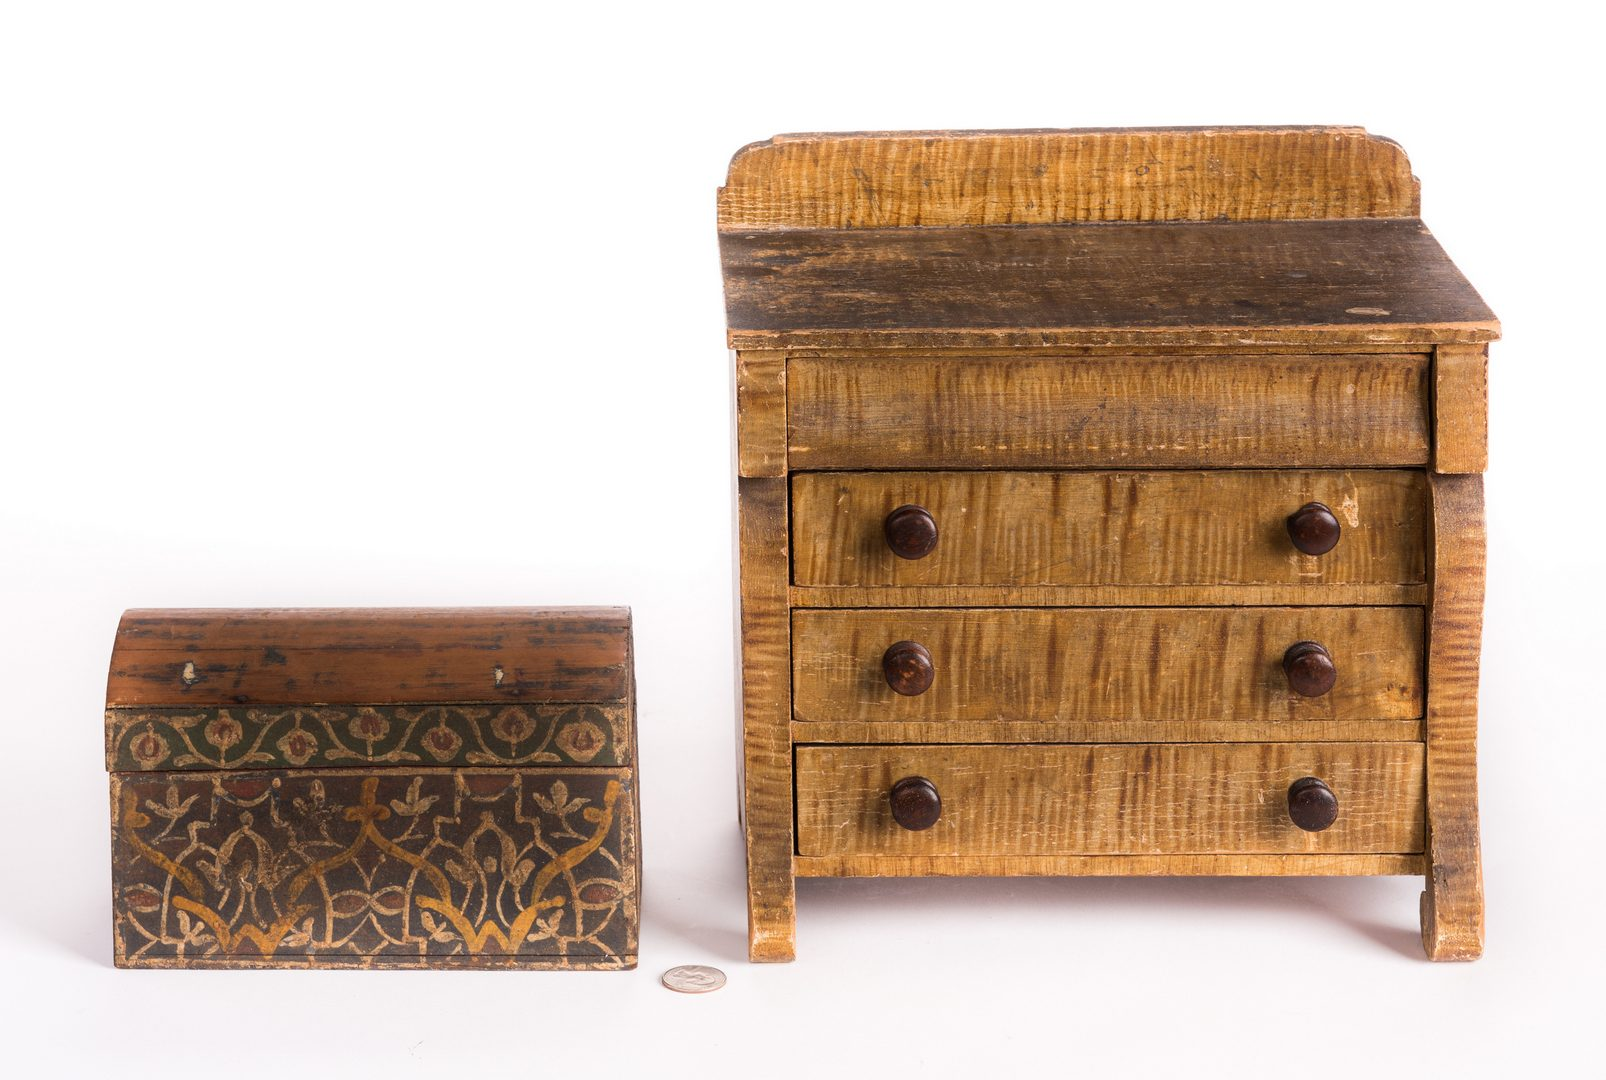 Lot 93: Painted Dome Box & Minature Empire Chest